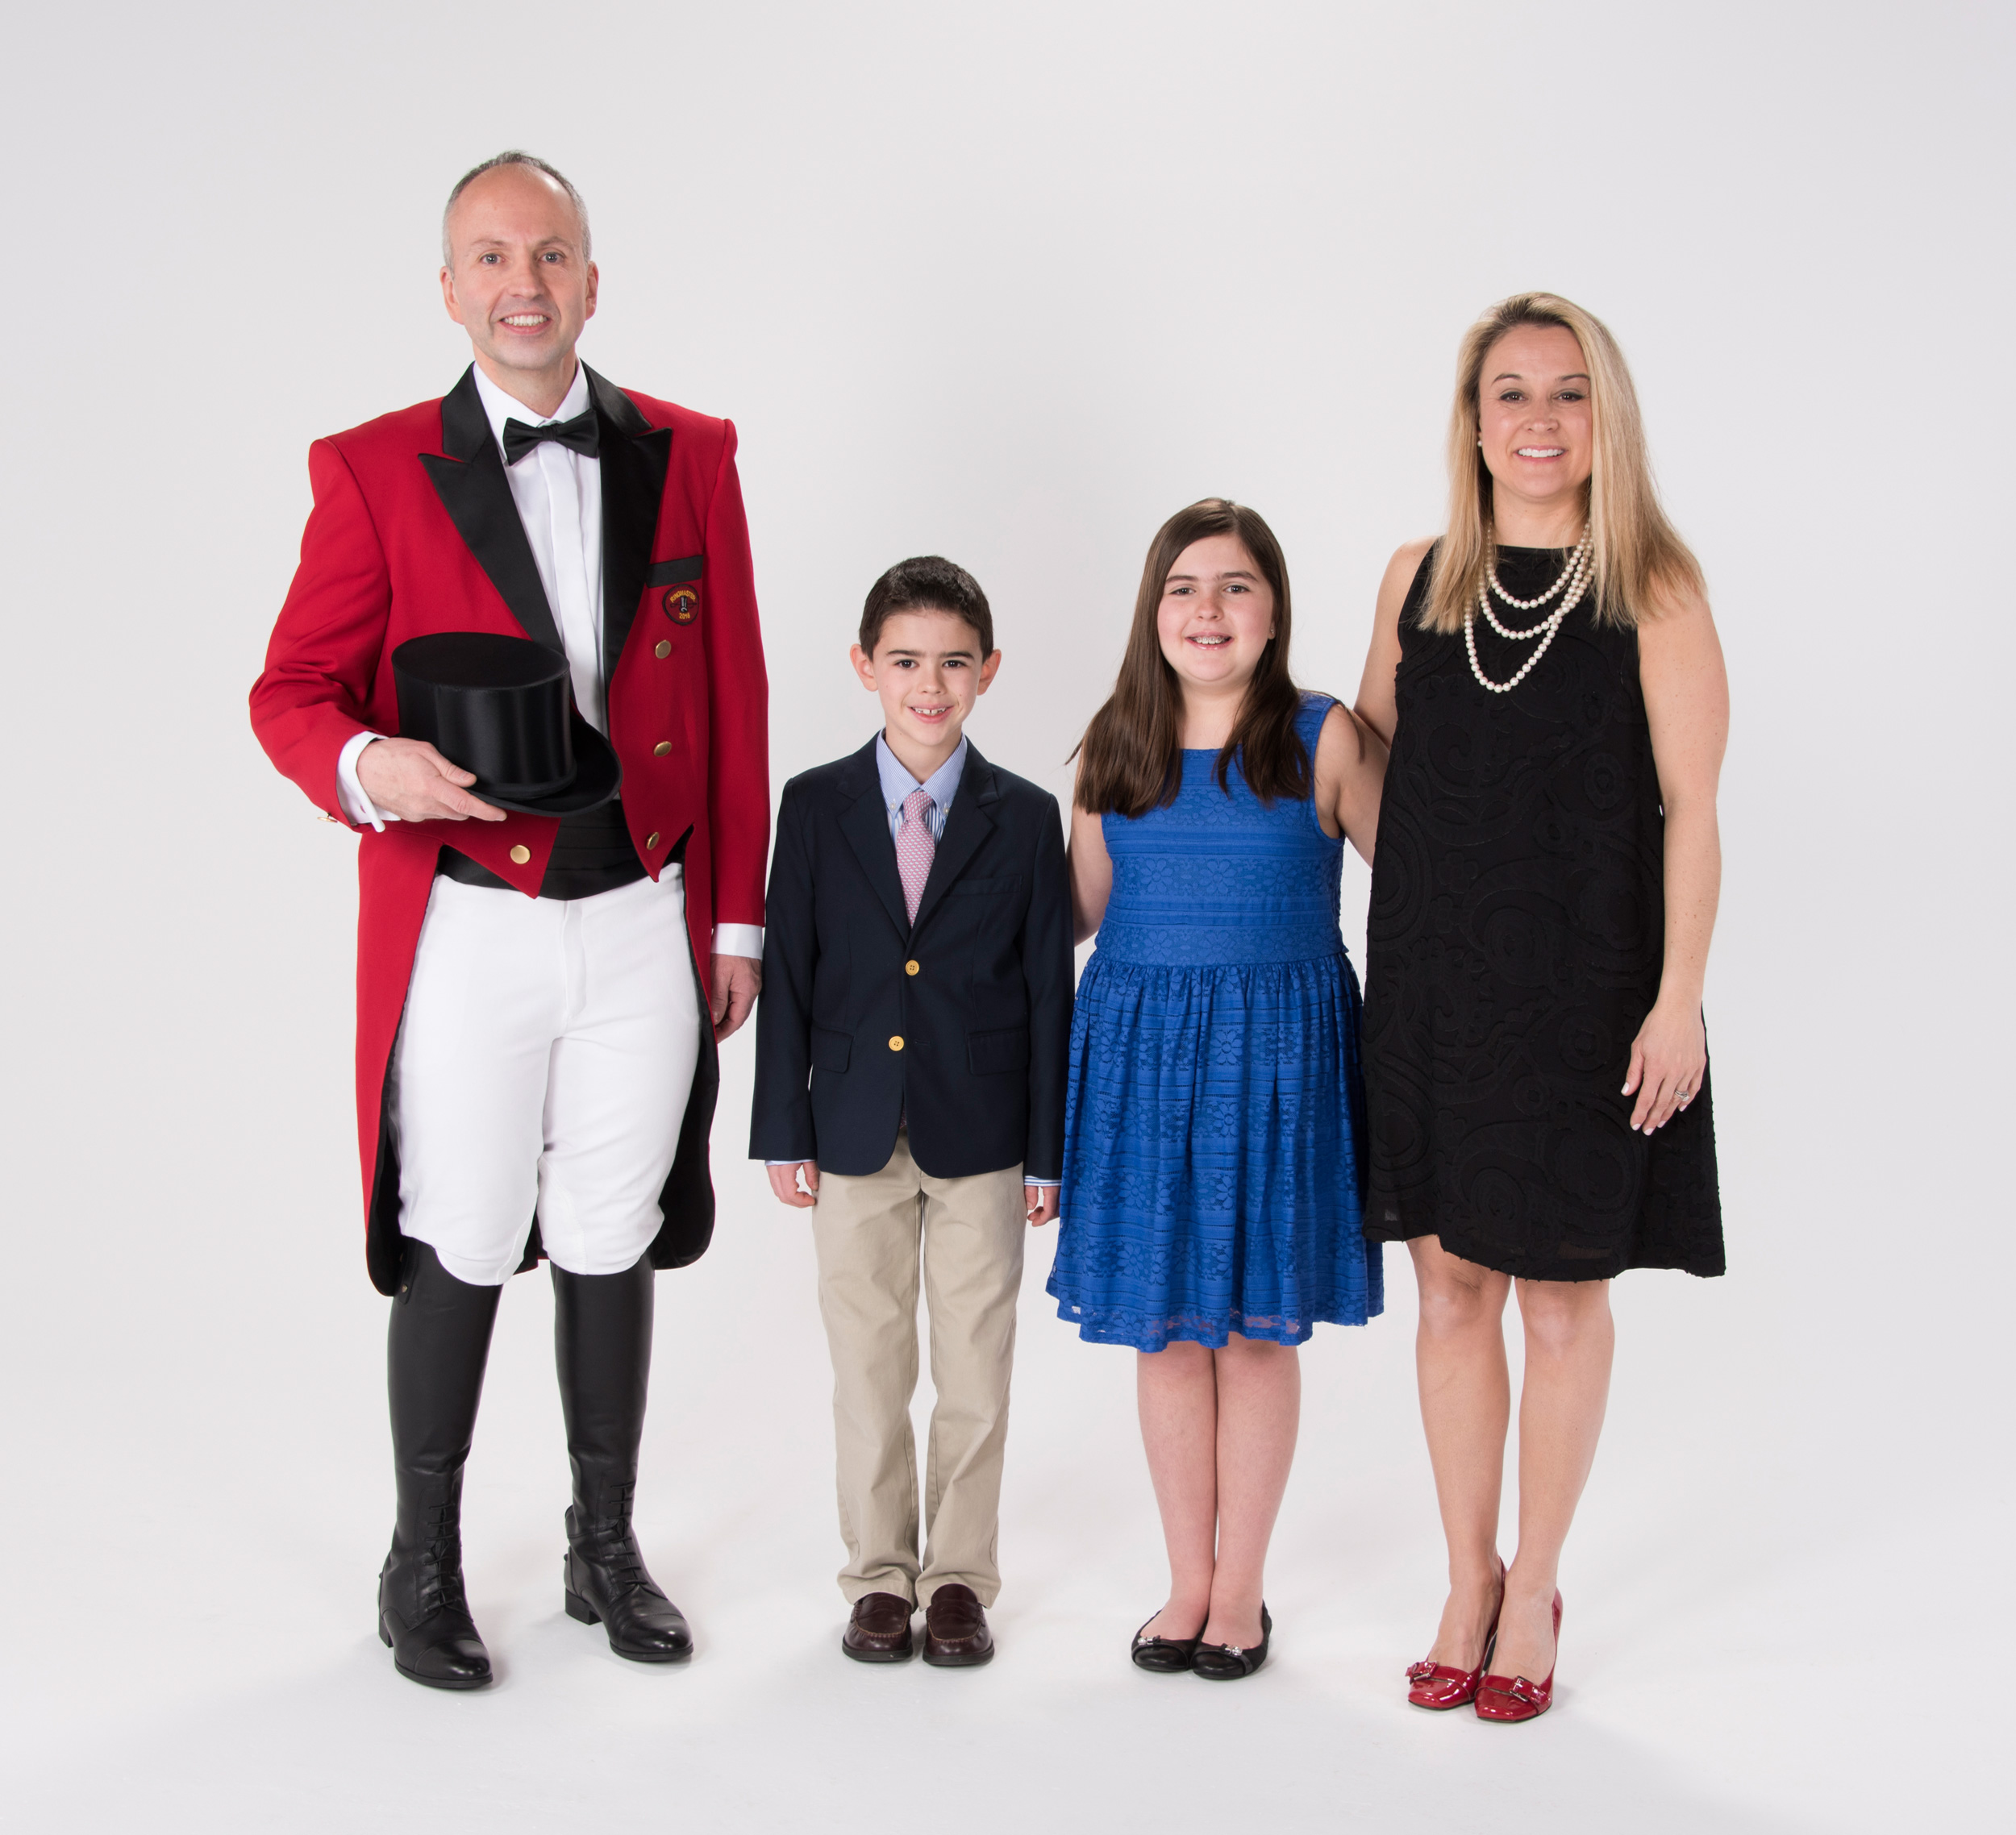 2016 Ringmaster Jason Julian with his wife, Tammy, and children Madison and Logan.